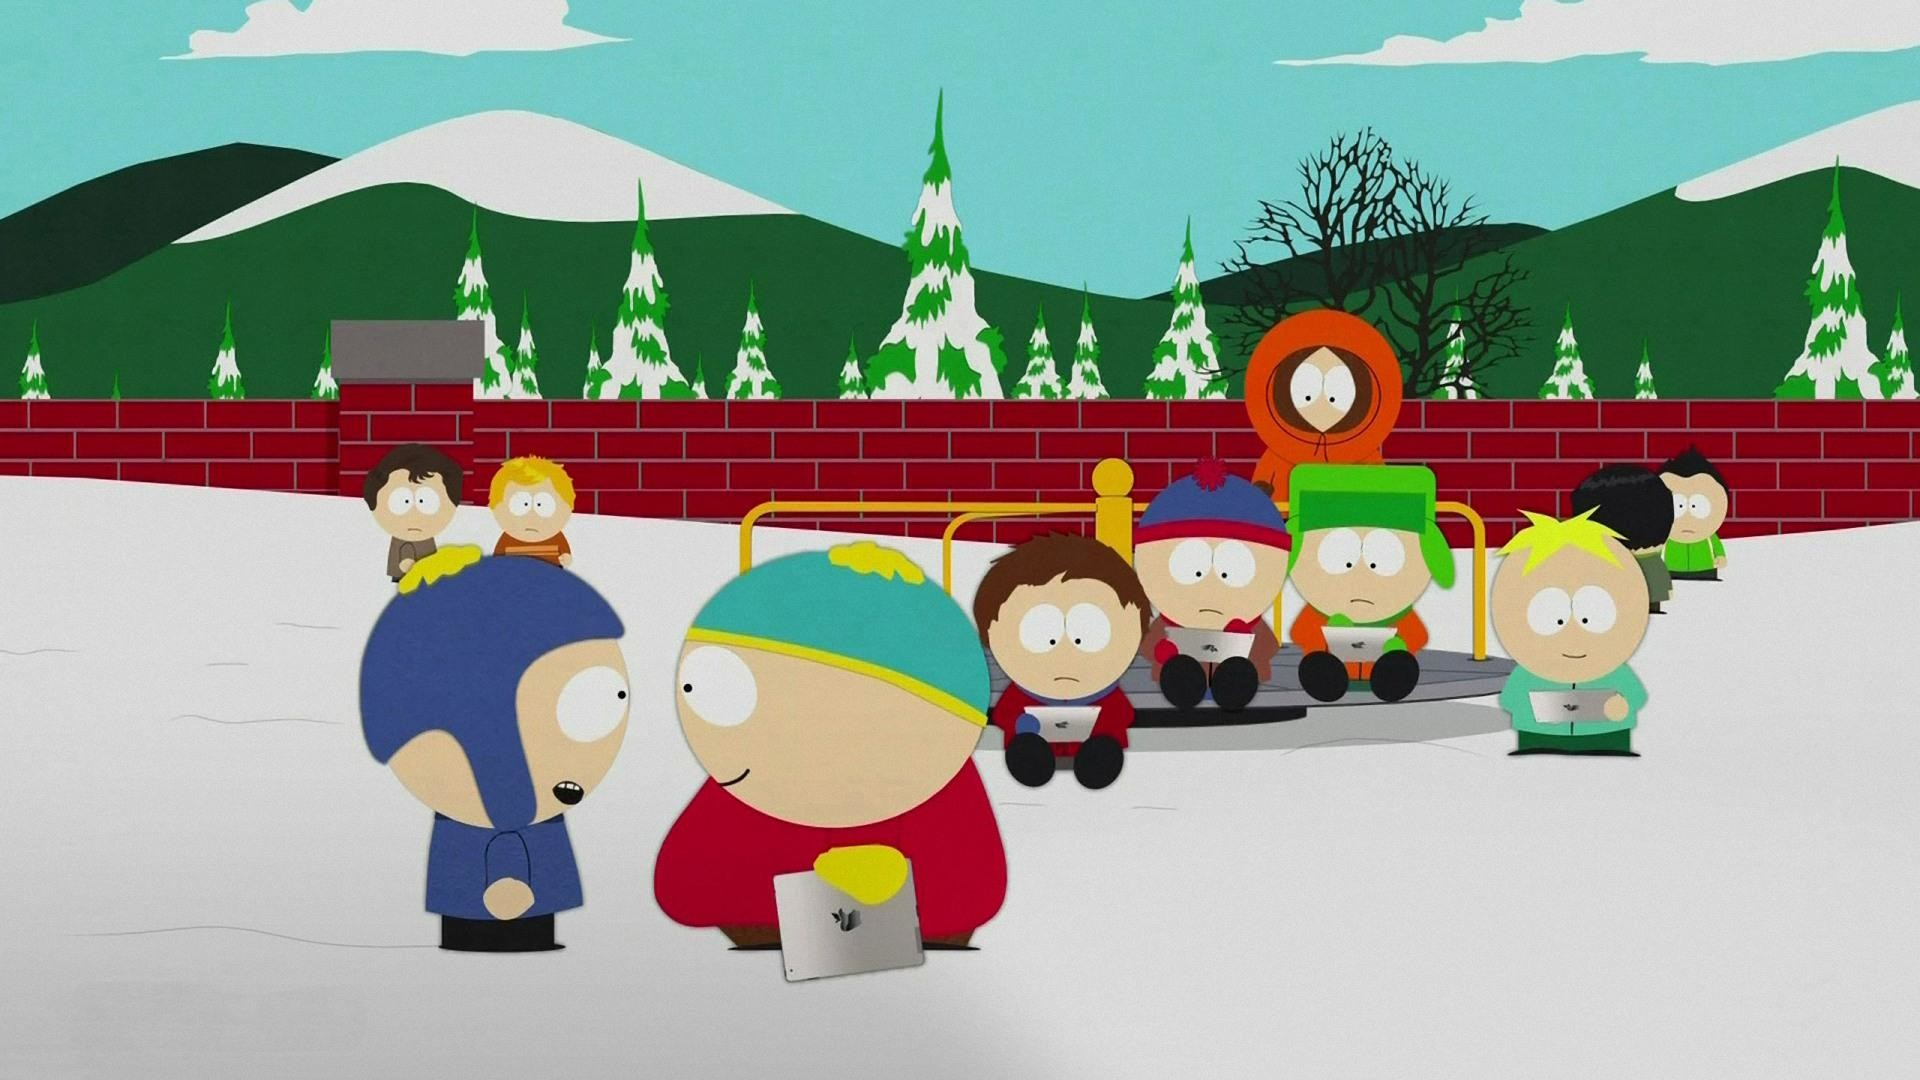 Funny South Park Wallpapers (65+ Images